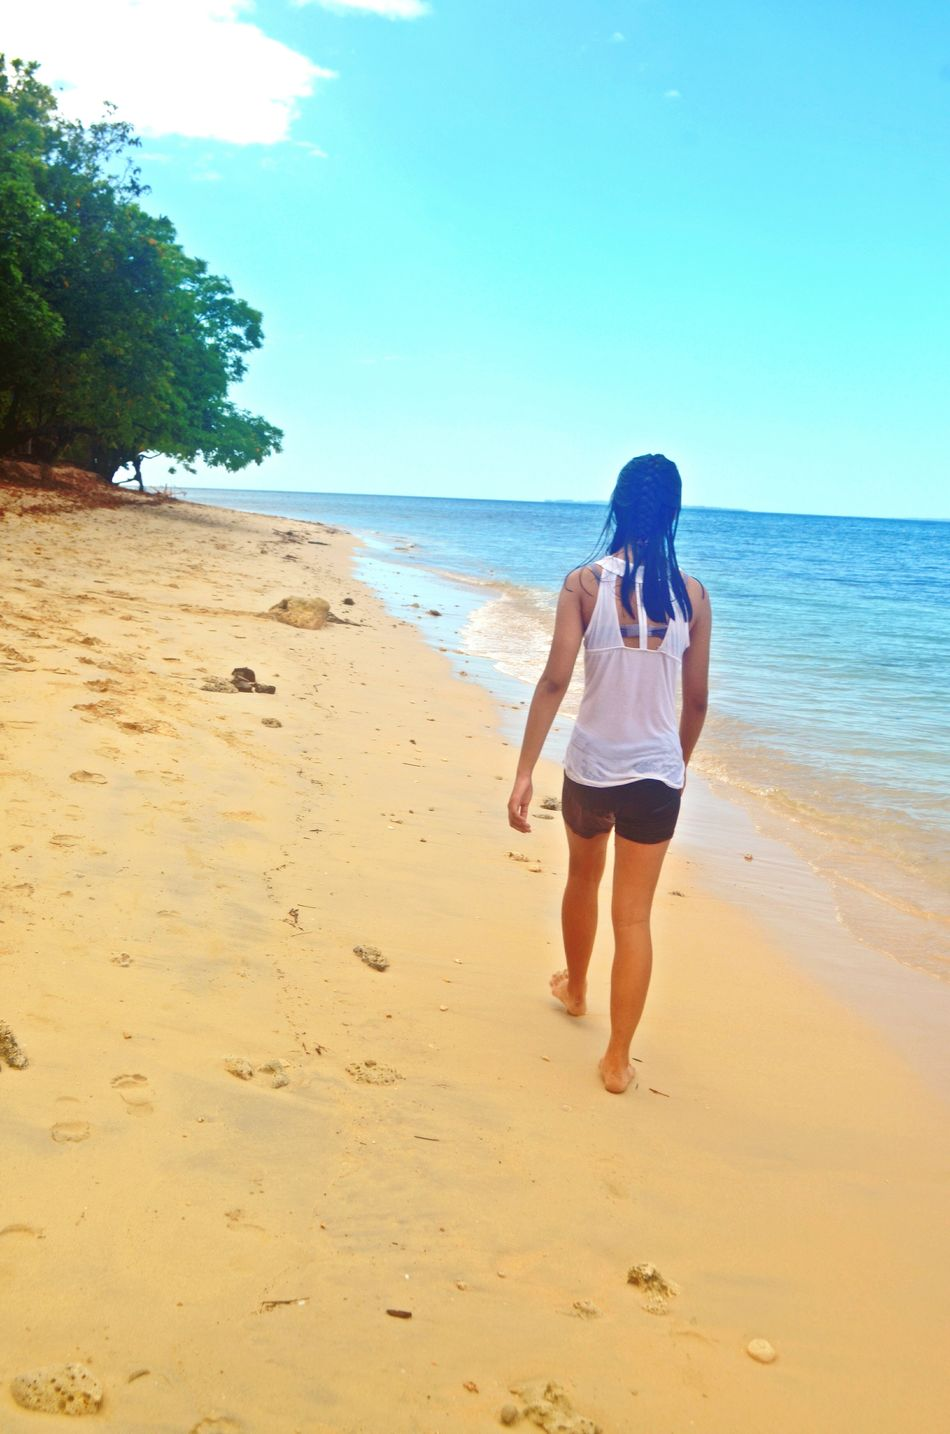 Feel The Journey Strollingonthebeach Girl Nature At The Island White Sand Beach Walking Clearwaterbeach Clear Blue Sky Lady Walking Fresh On Eyeem  Showcase June Roaming Around The Island Welcome Weekly People Together TakeoverContrast My Year My View